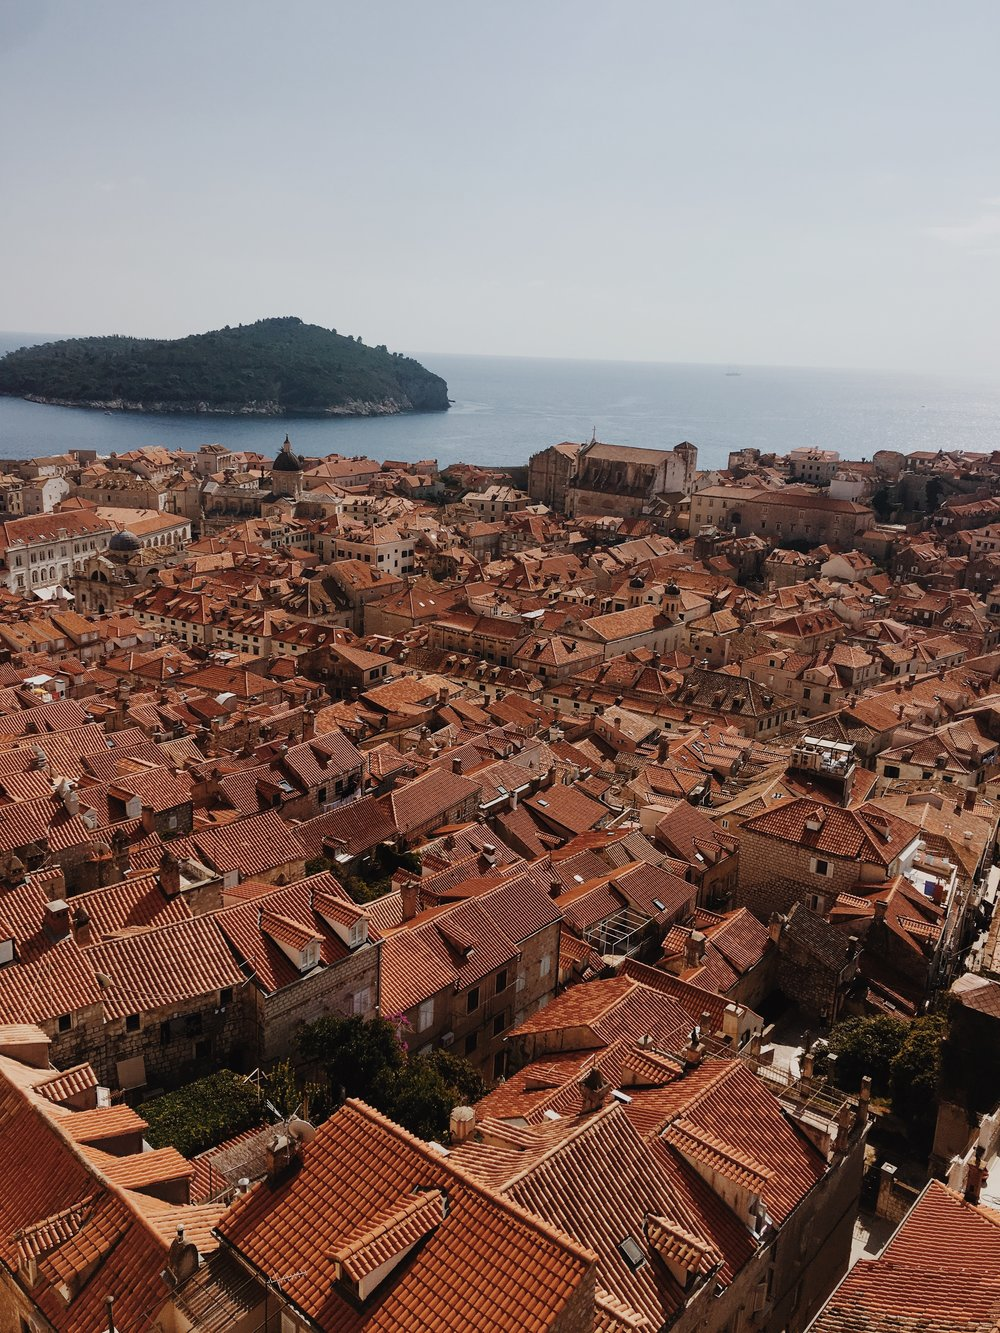 Dubrovnik - I love this photo of Dubrovnik from up above. Taken whilst on the city walks at one of the best photo locations to get a view of the entire city. Beautifully tiled, matching rooftops and the Adriatic in the distance.